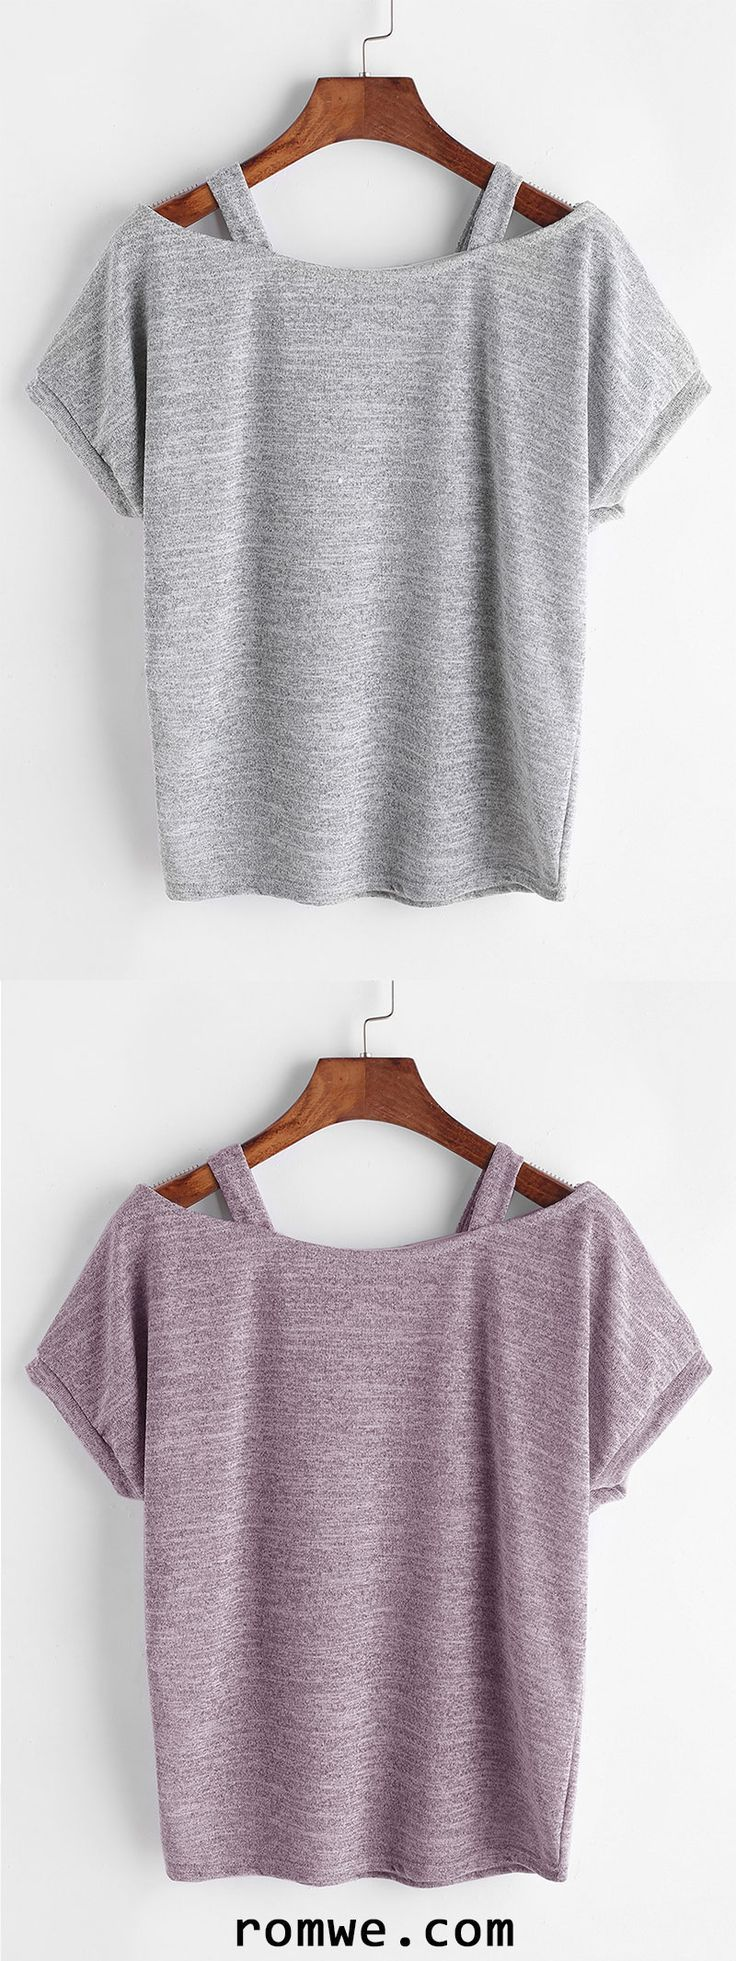 Cut Out Tighter Sleeve T-shirt